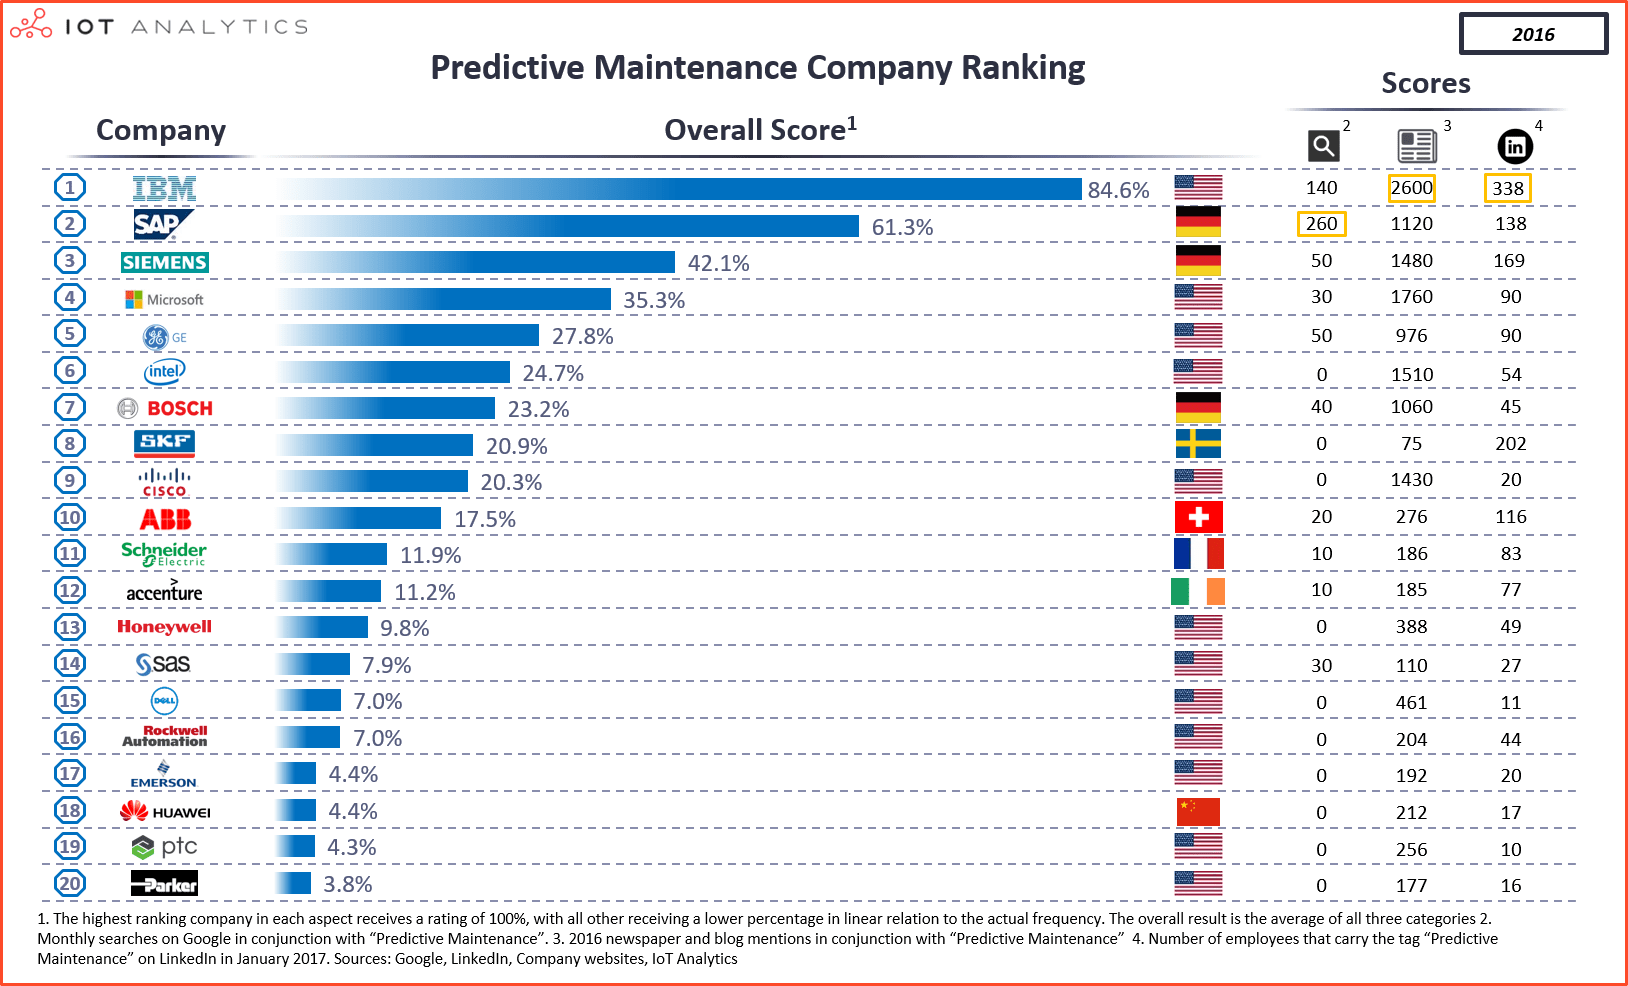 Predictive Maintenance is one of the leading use cases for